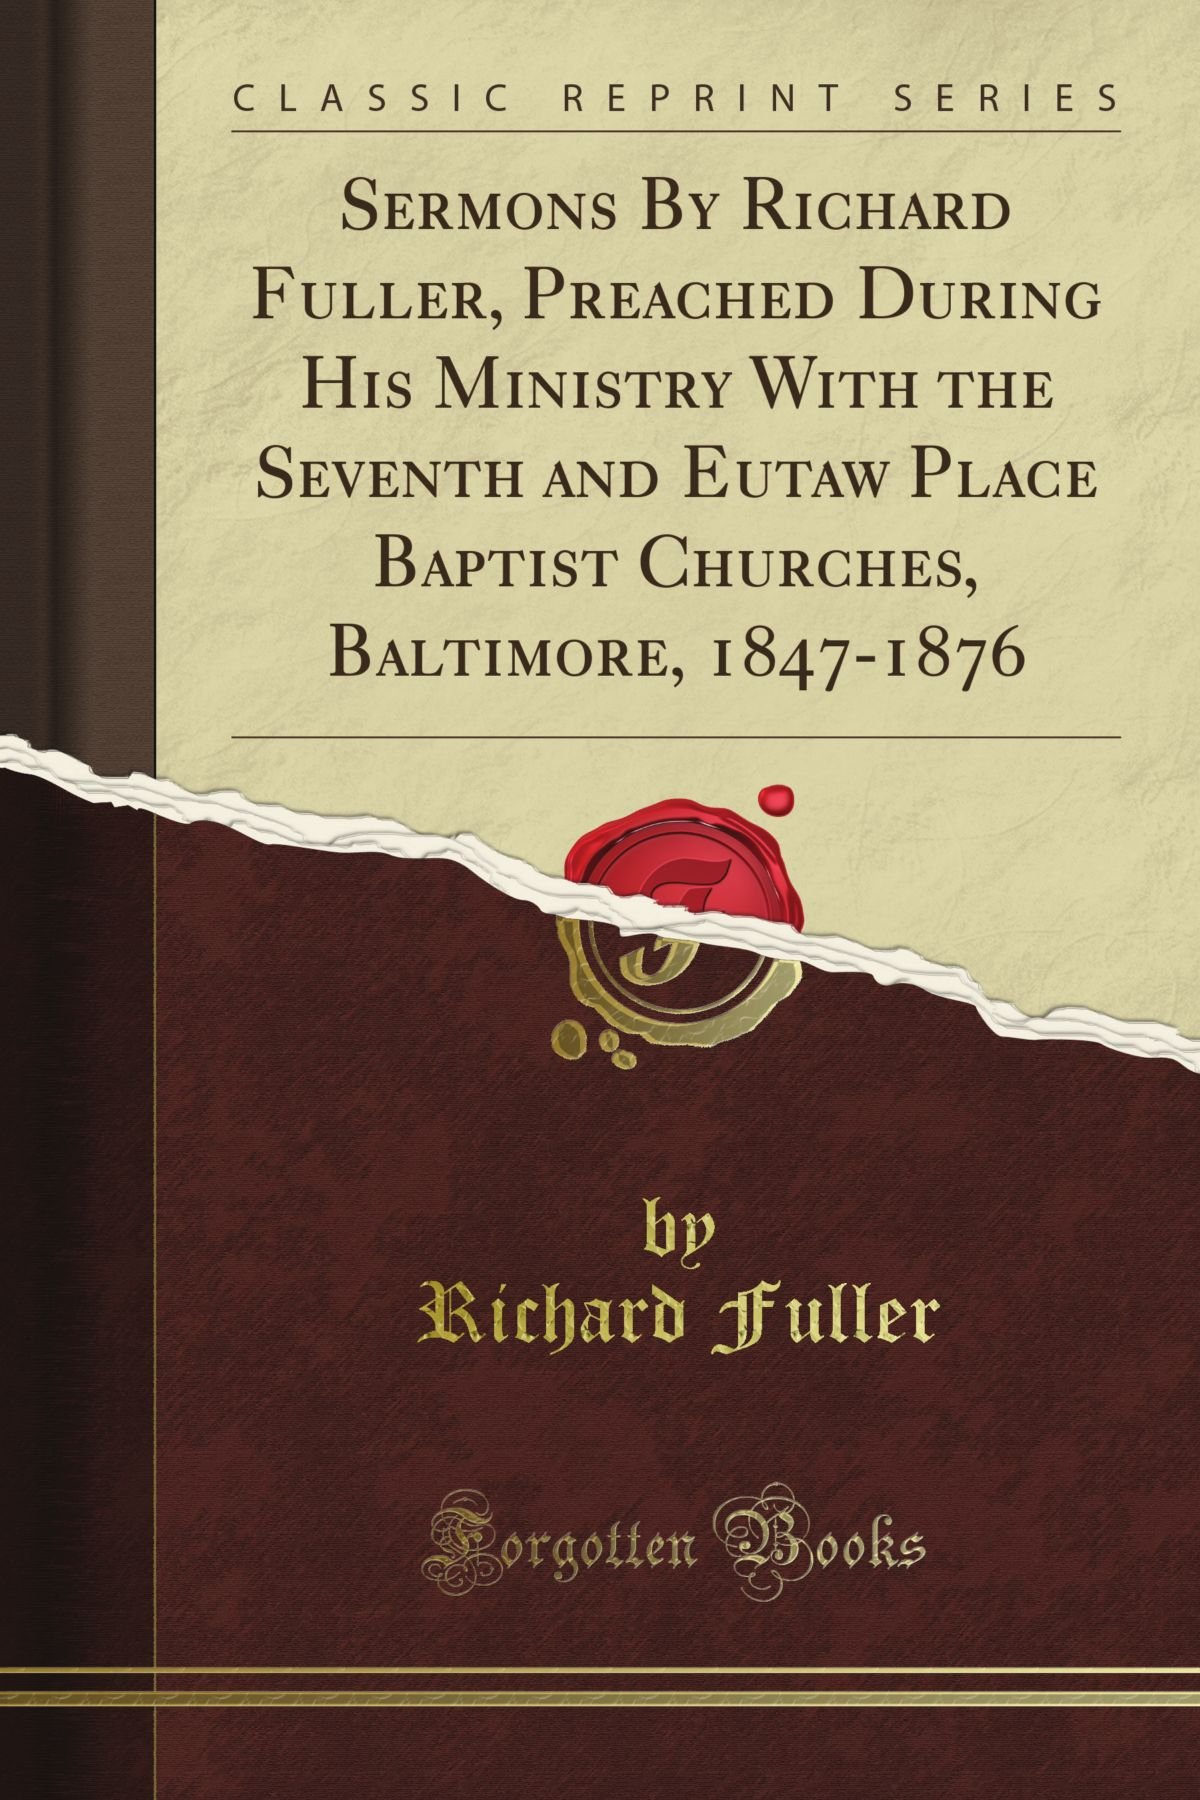 Download Sermons By Richard Fuller, Preached During His Ministry With the Seventh and Eutaw Place Baptist Churches, Baltimore, 1847-1876 (Classic Reprint) PDF